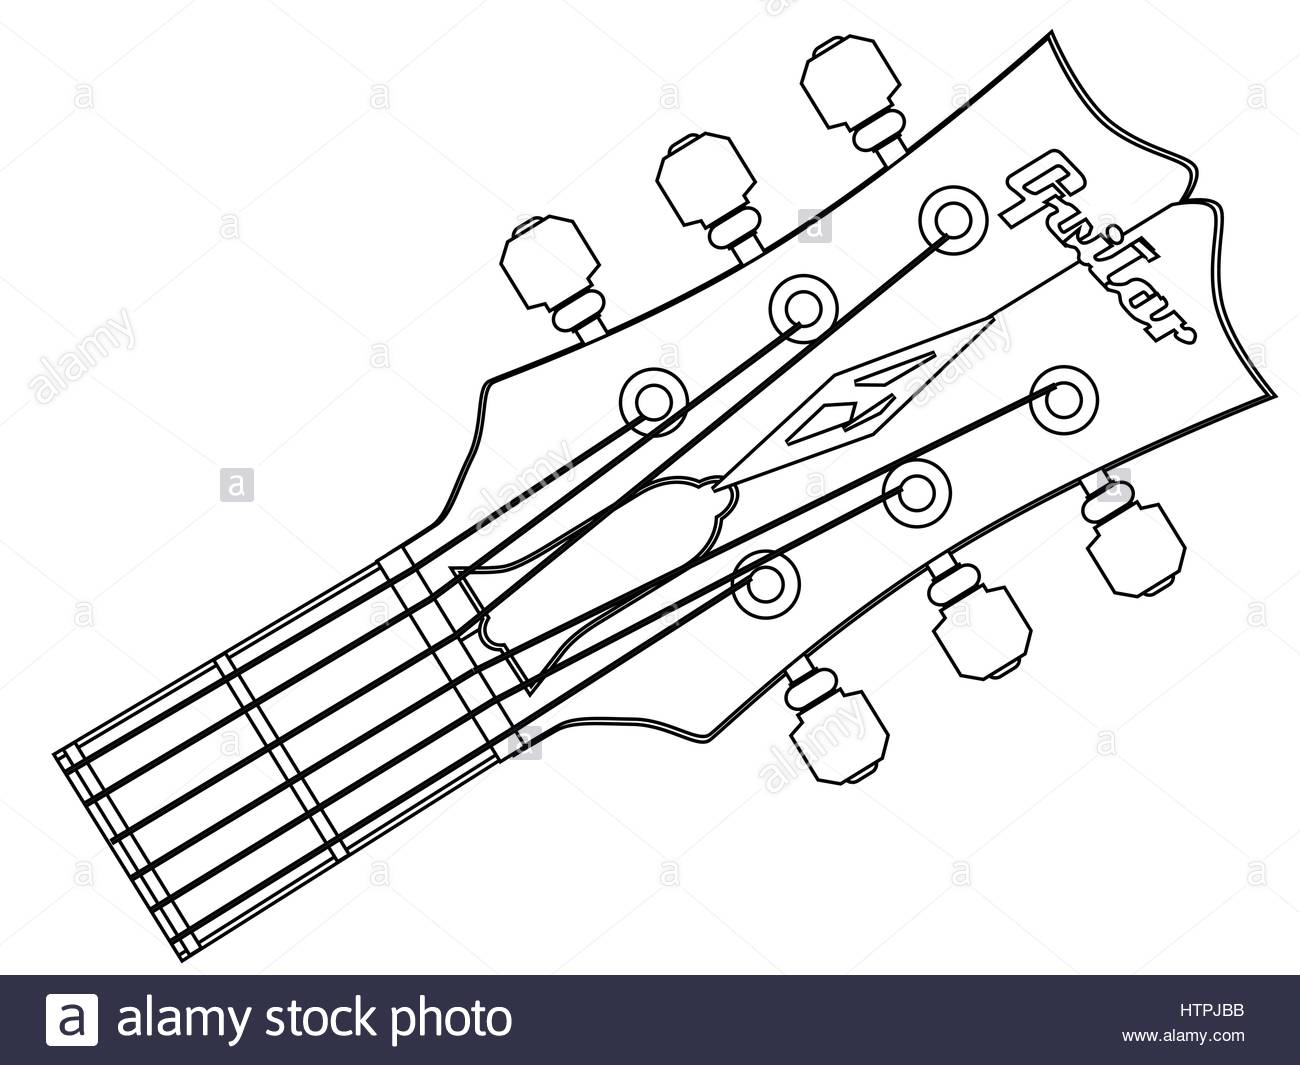 1300x1065 A Traditional Guitar Headstock With Strings And Tuners Stock